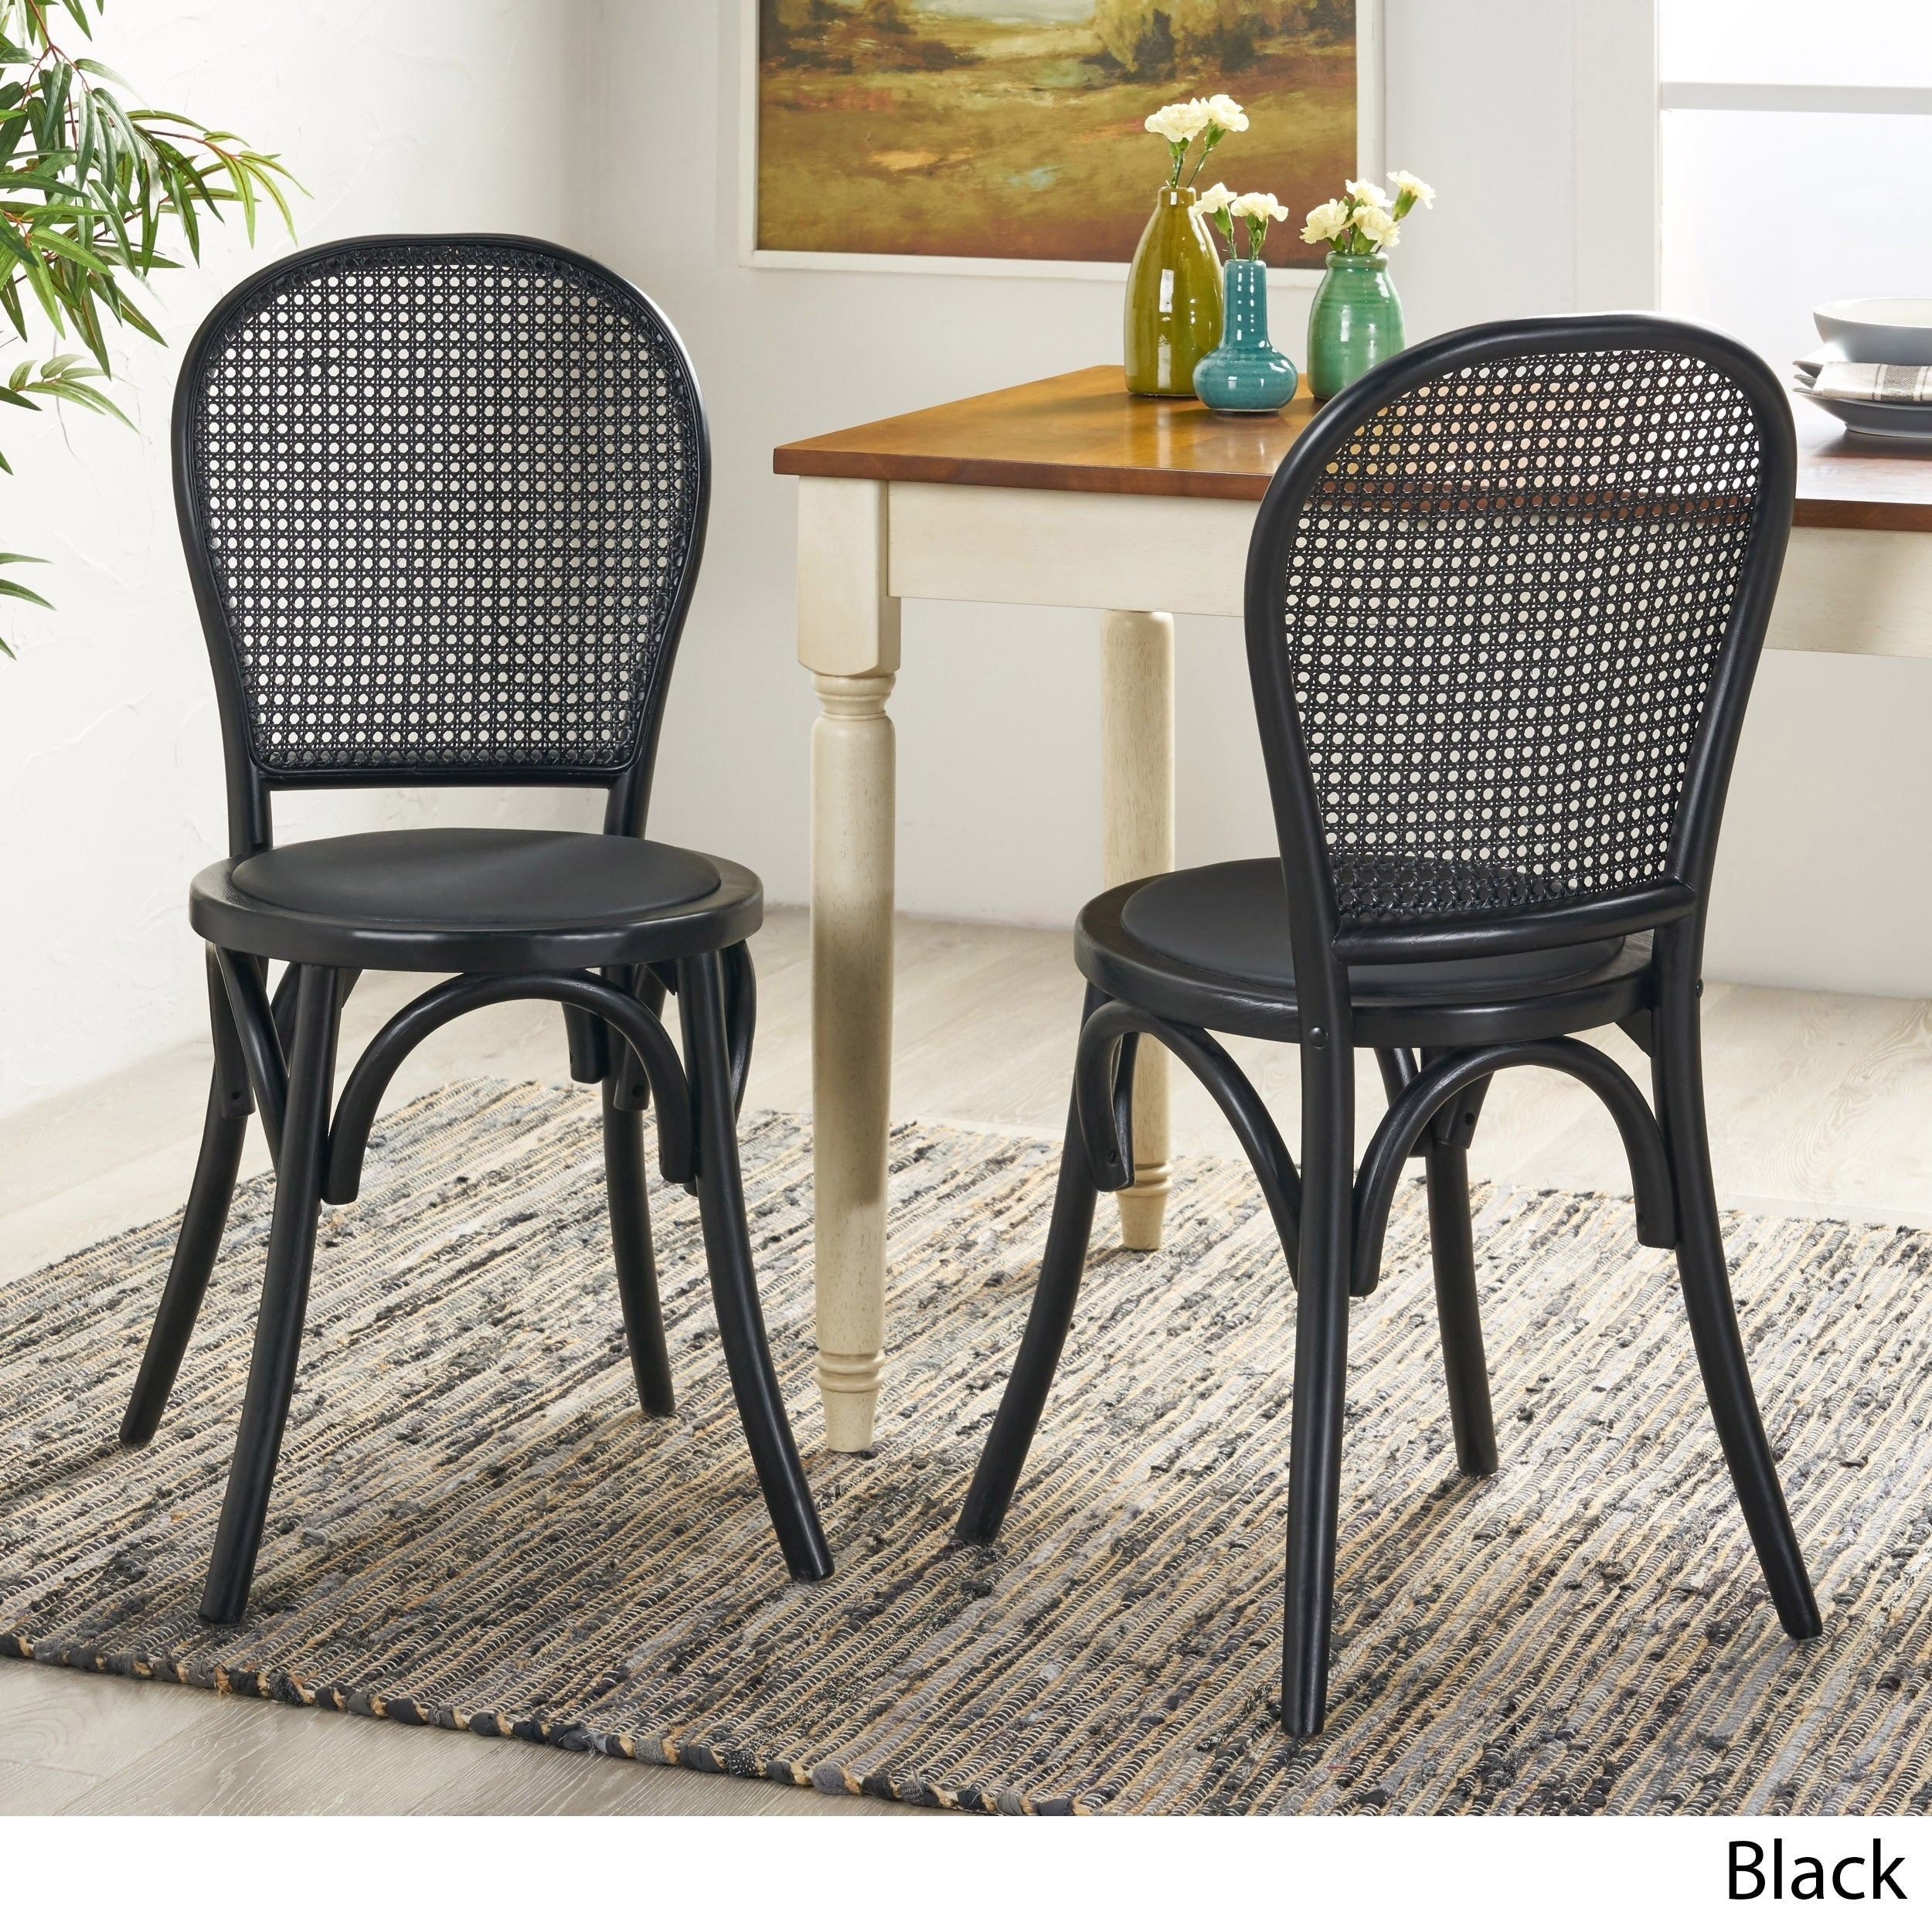 Chisum Beech Wood And Rattan Dining Chair With Faux Leather Cushion Set Of 2 By Christopher Knight Home On Sale Overstock 29737716